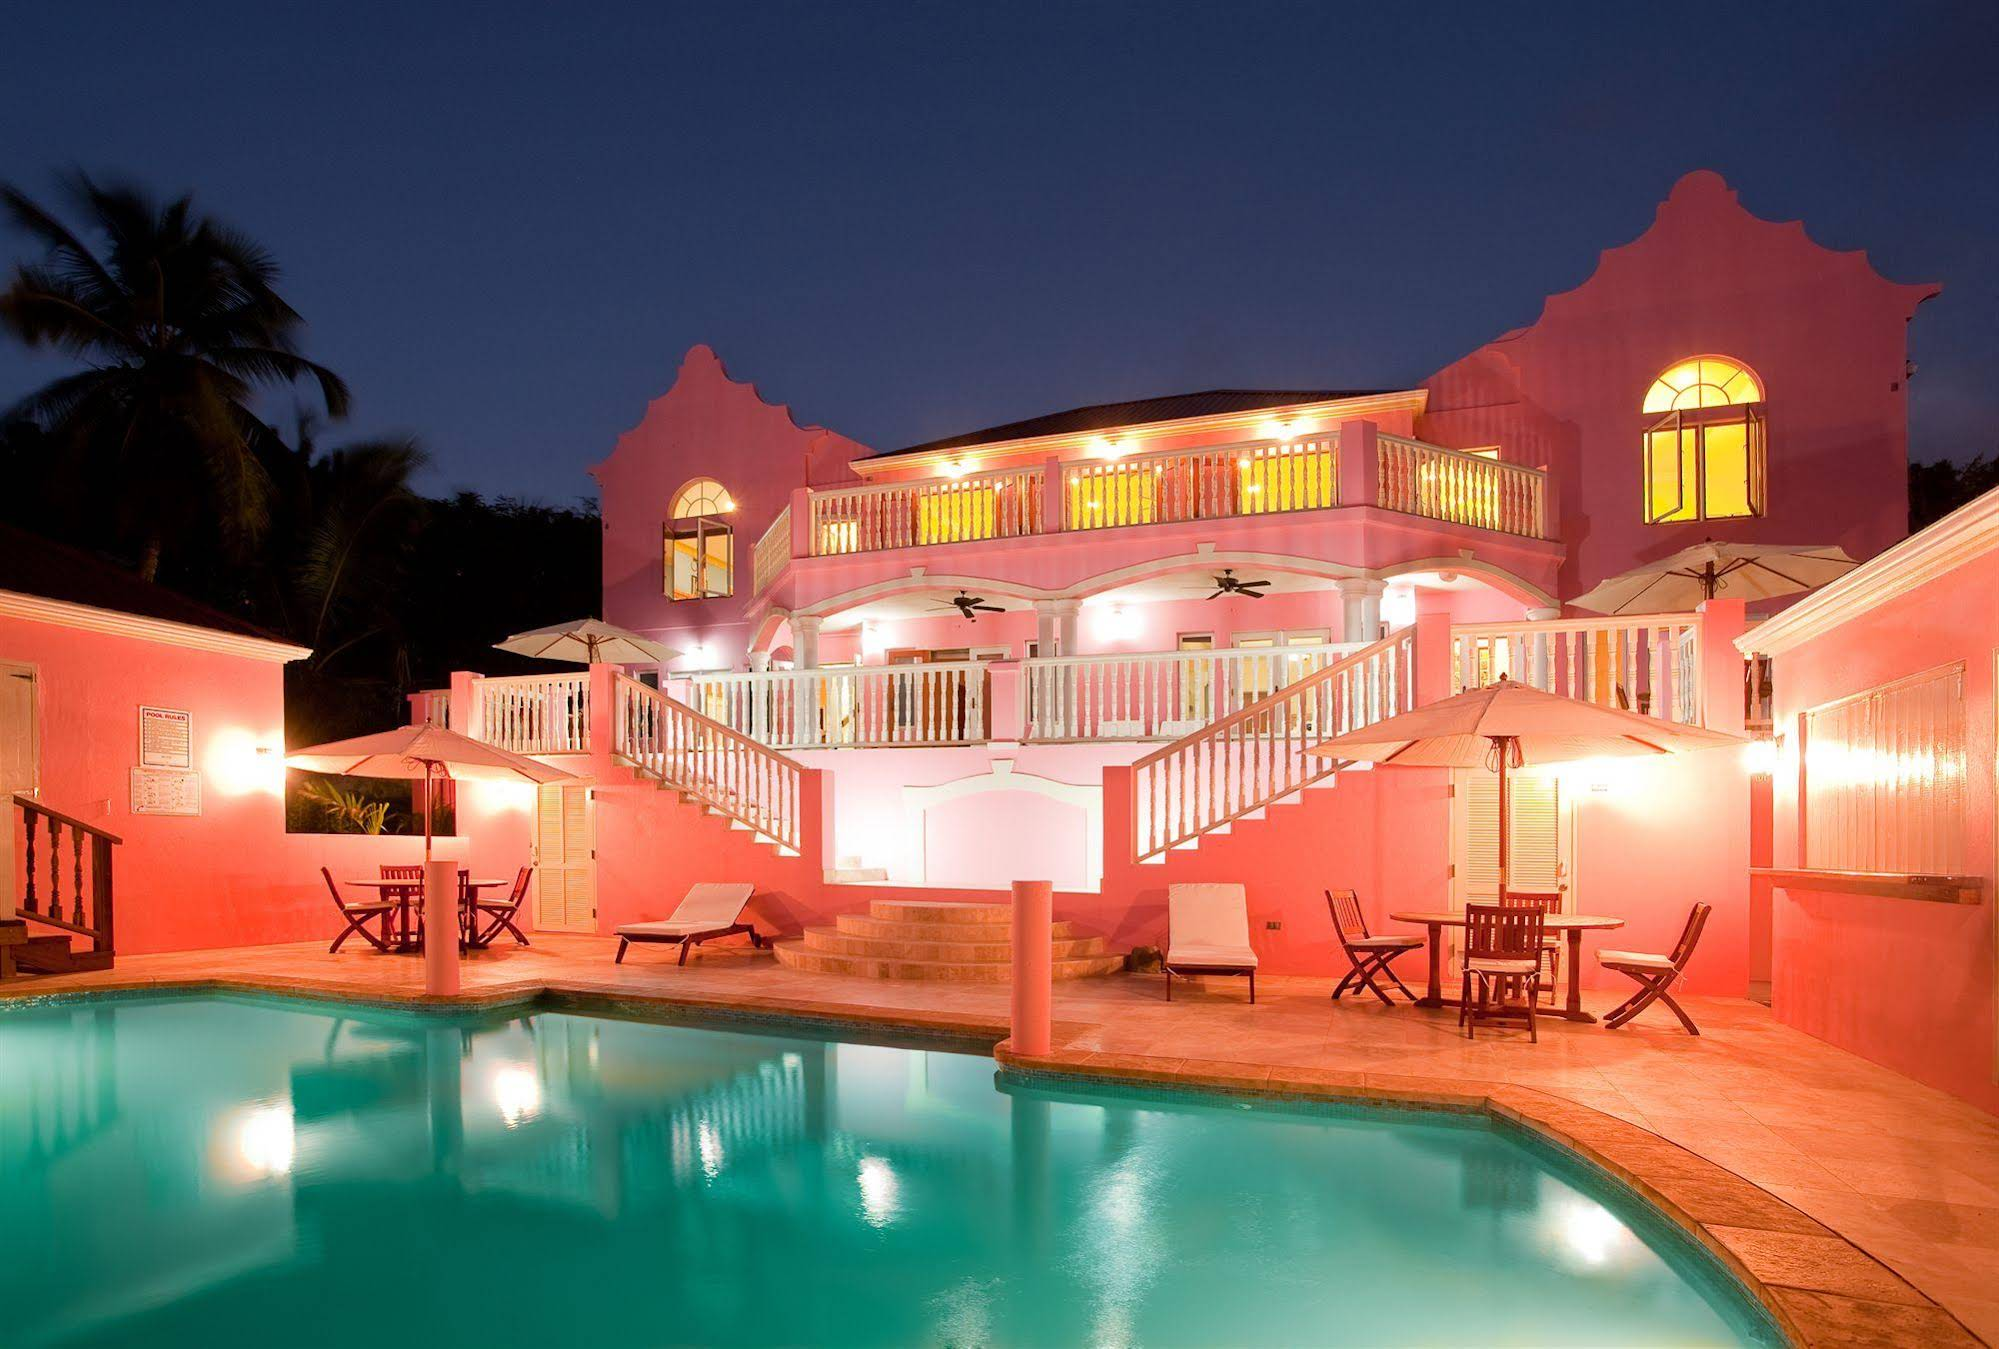 The Villas at Sunset Lane Adults Only